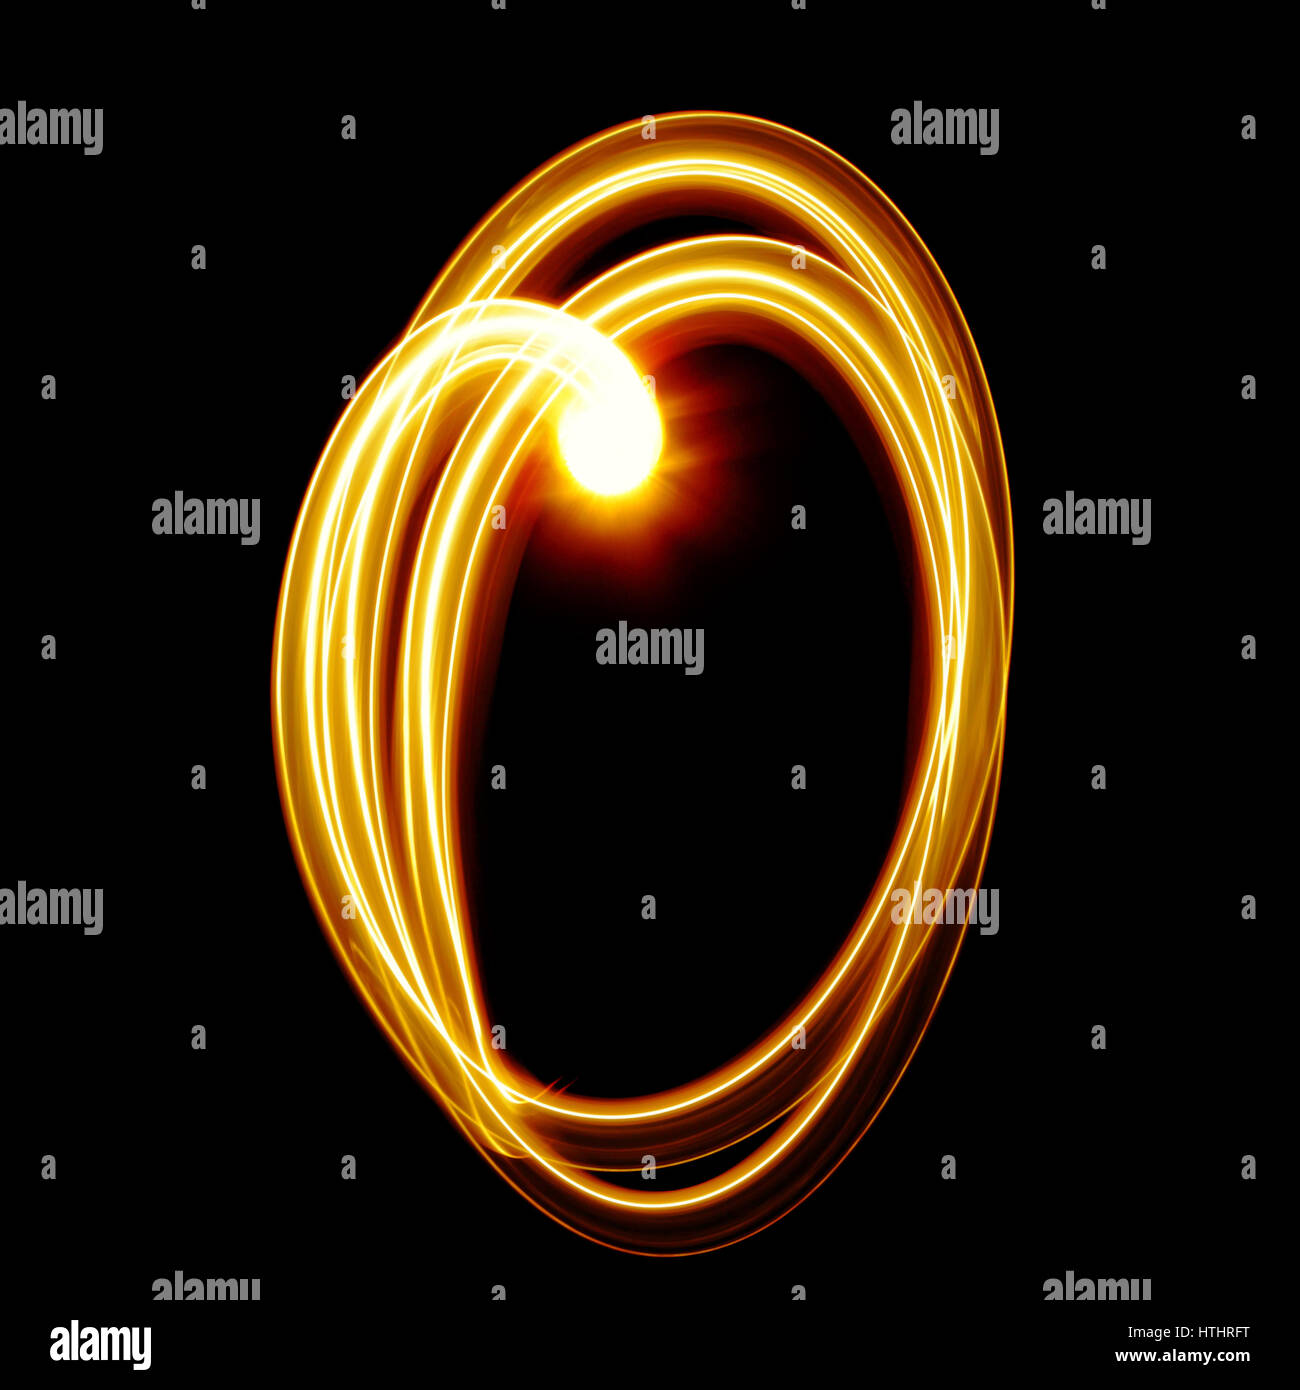 Zero - Created by light numerals over black background - Stock Image